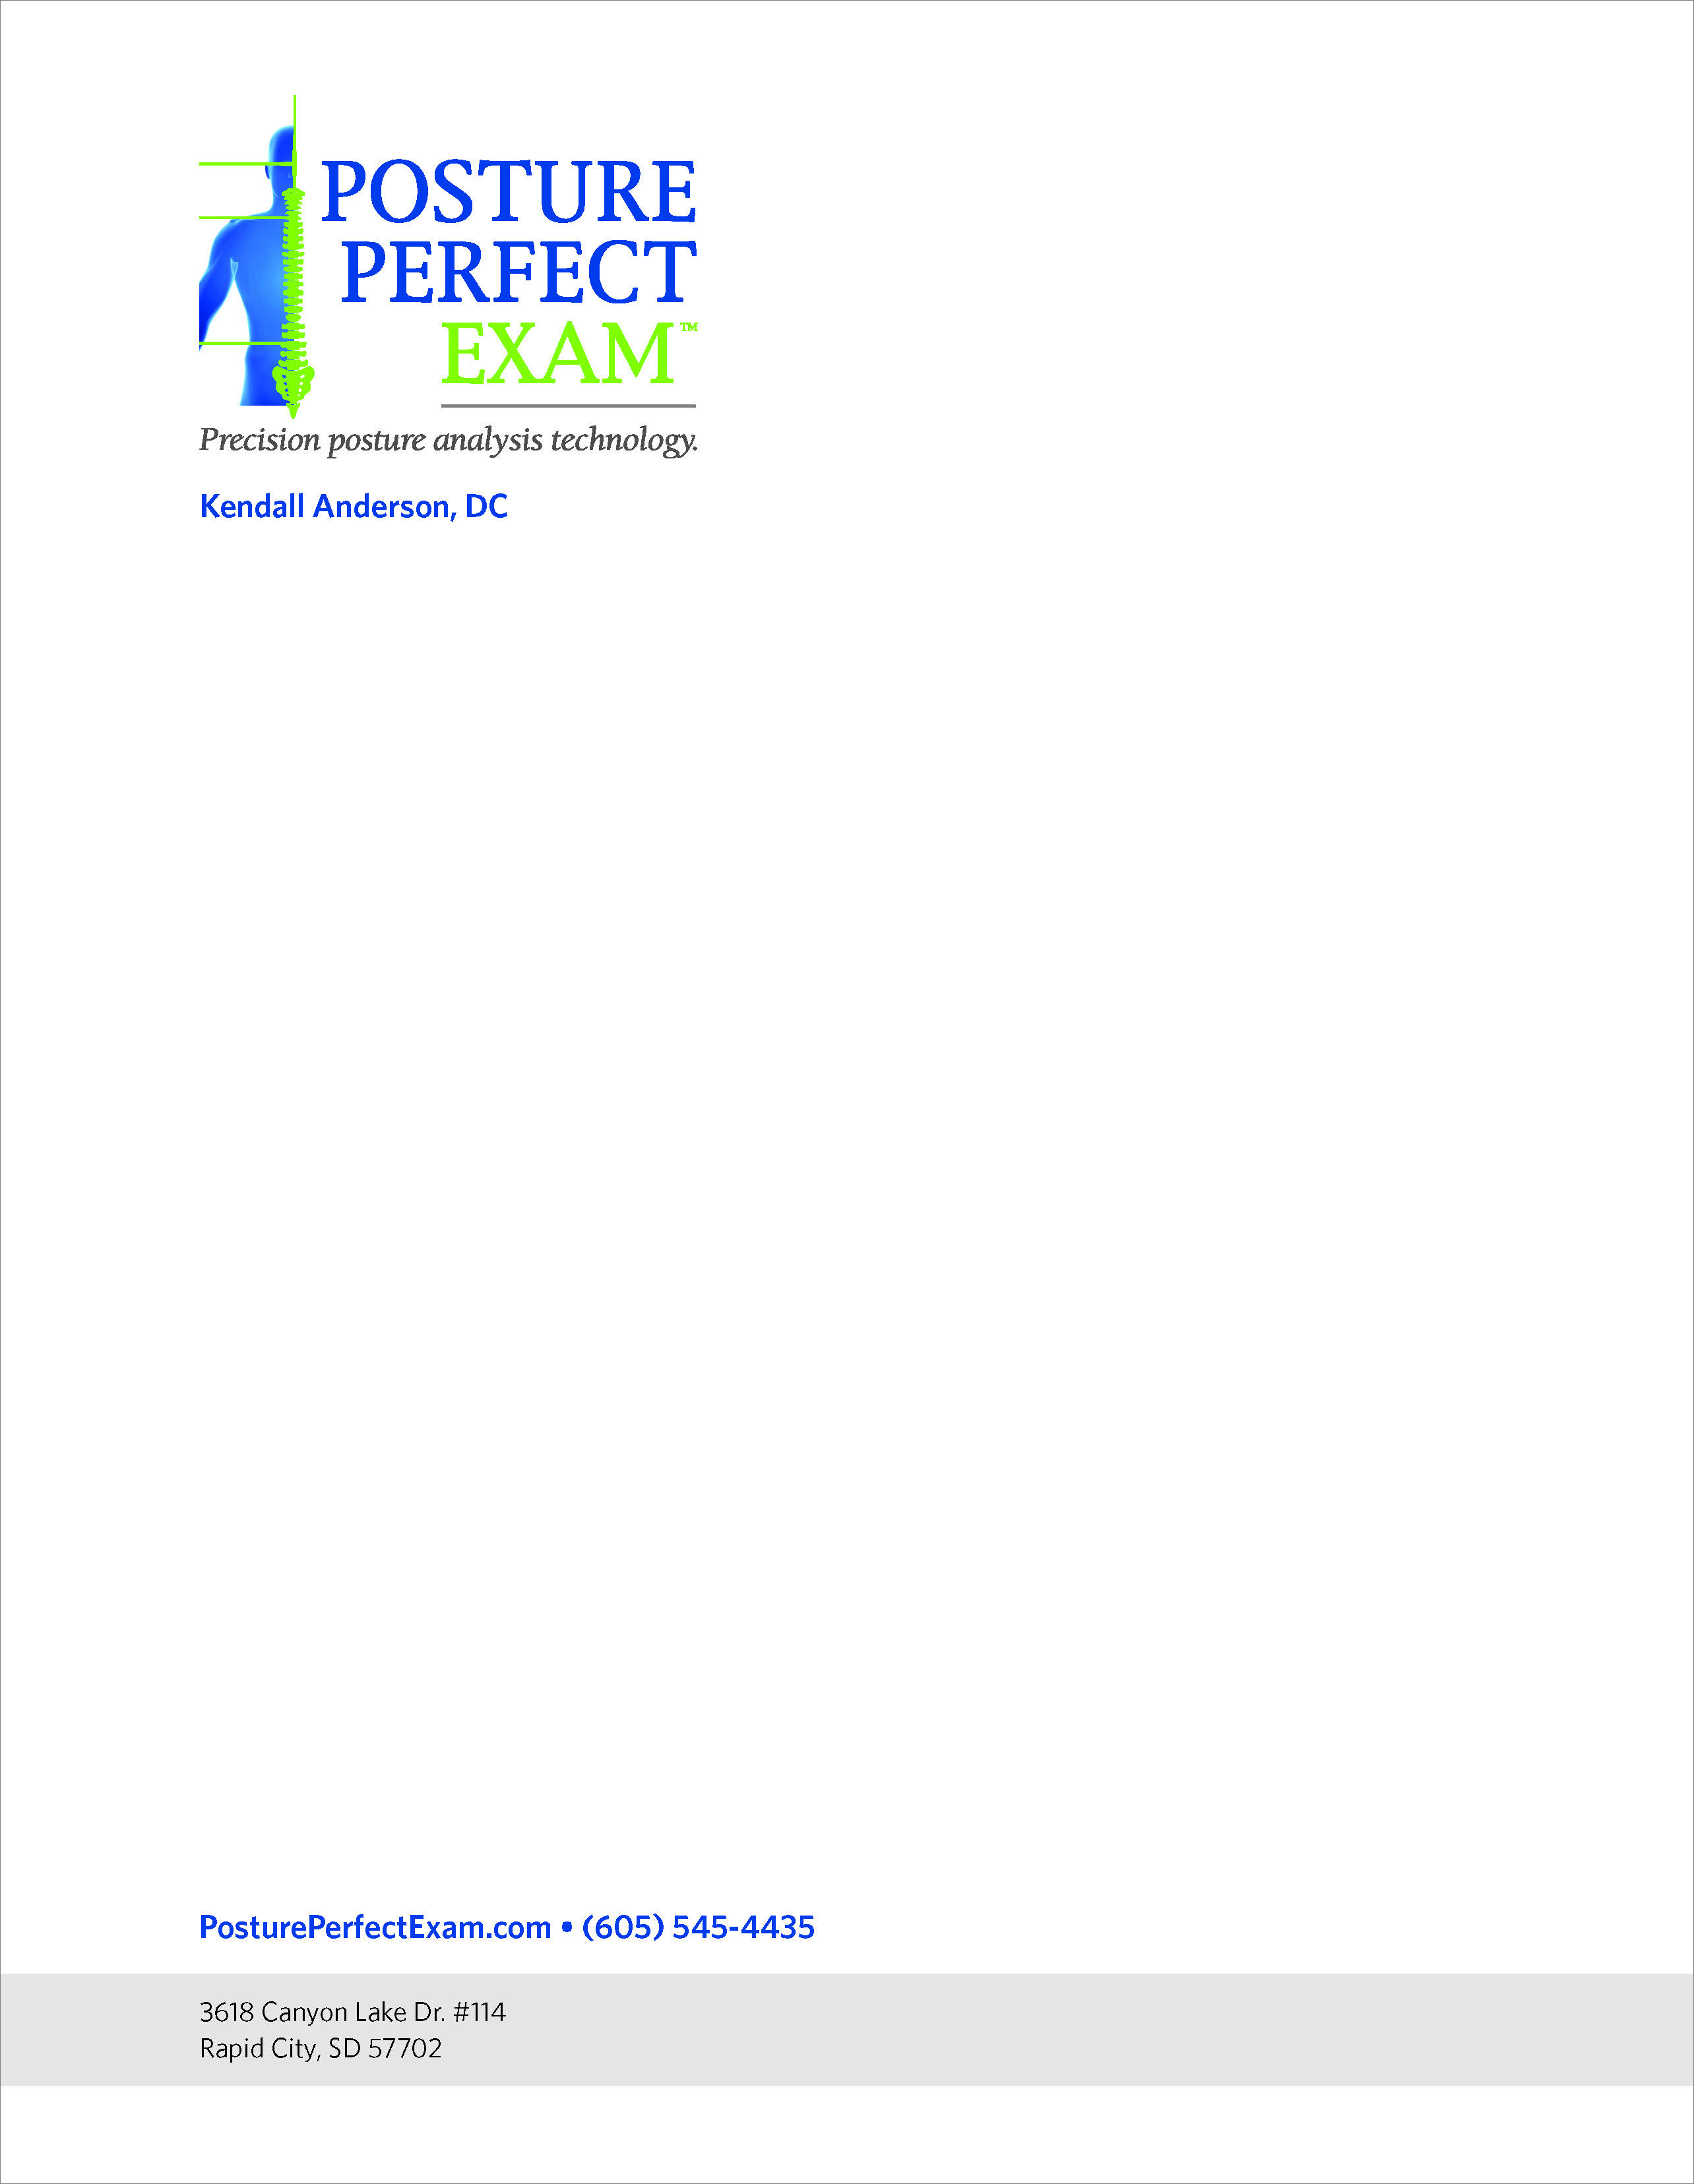 Posture Perfect Exam Letterhead